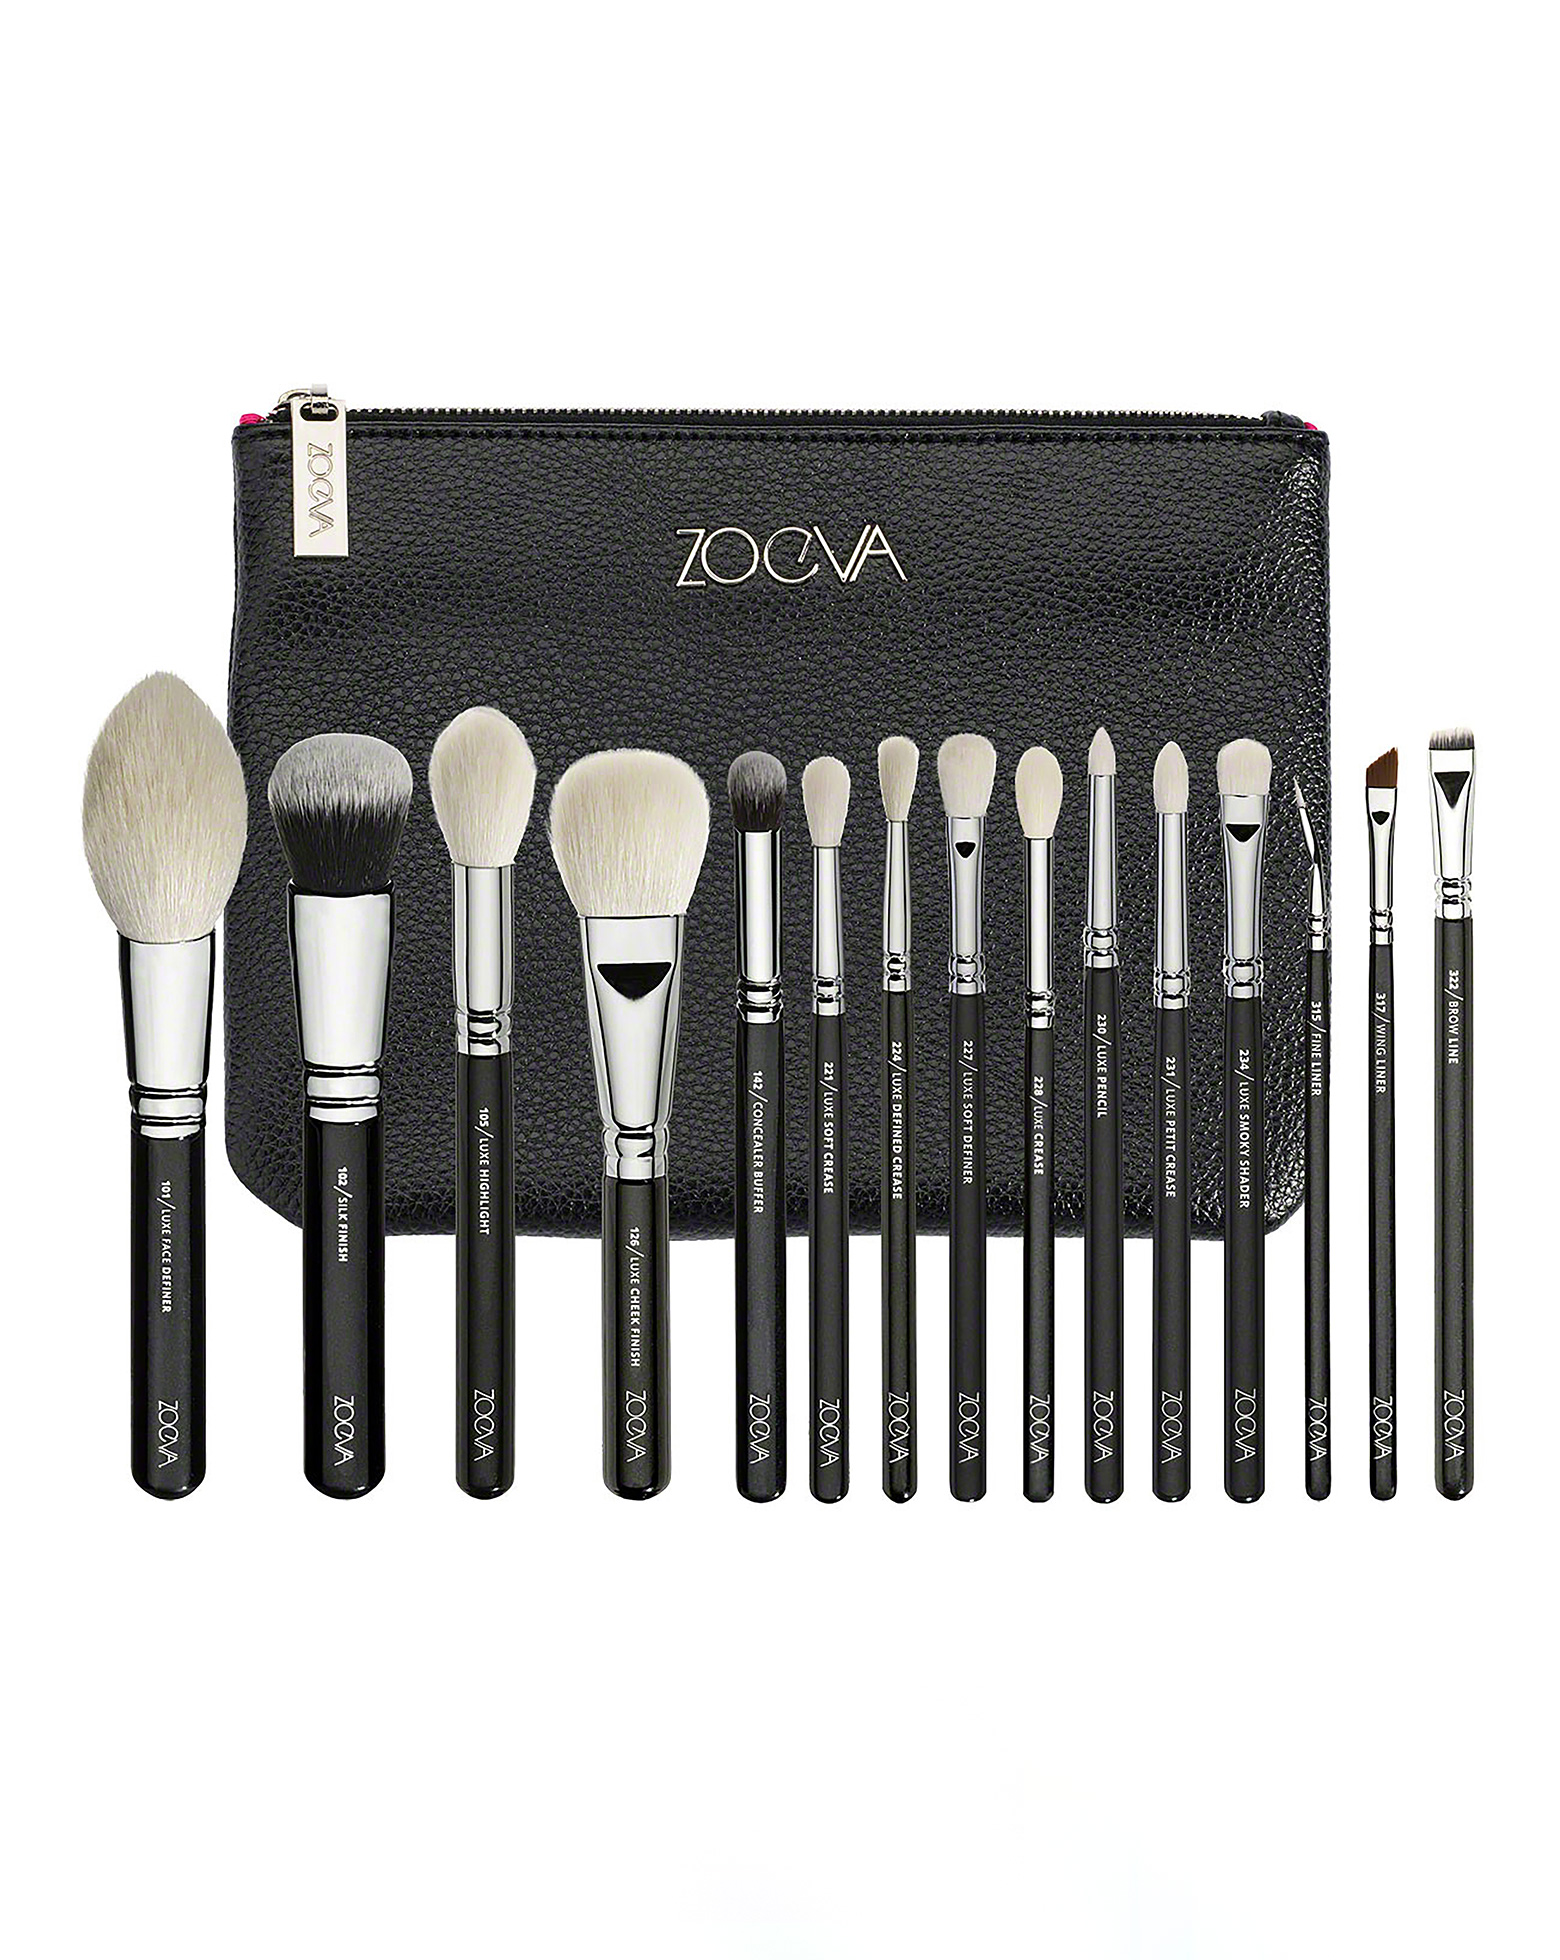 Pro Brush Powder By Nyx Professional Makeup: Luxe Complete Professional Brush Set By ZOEVA